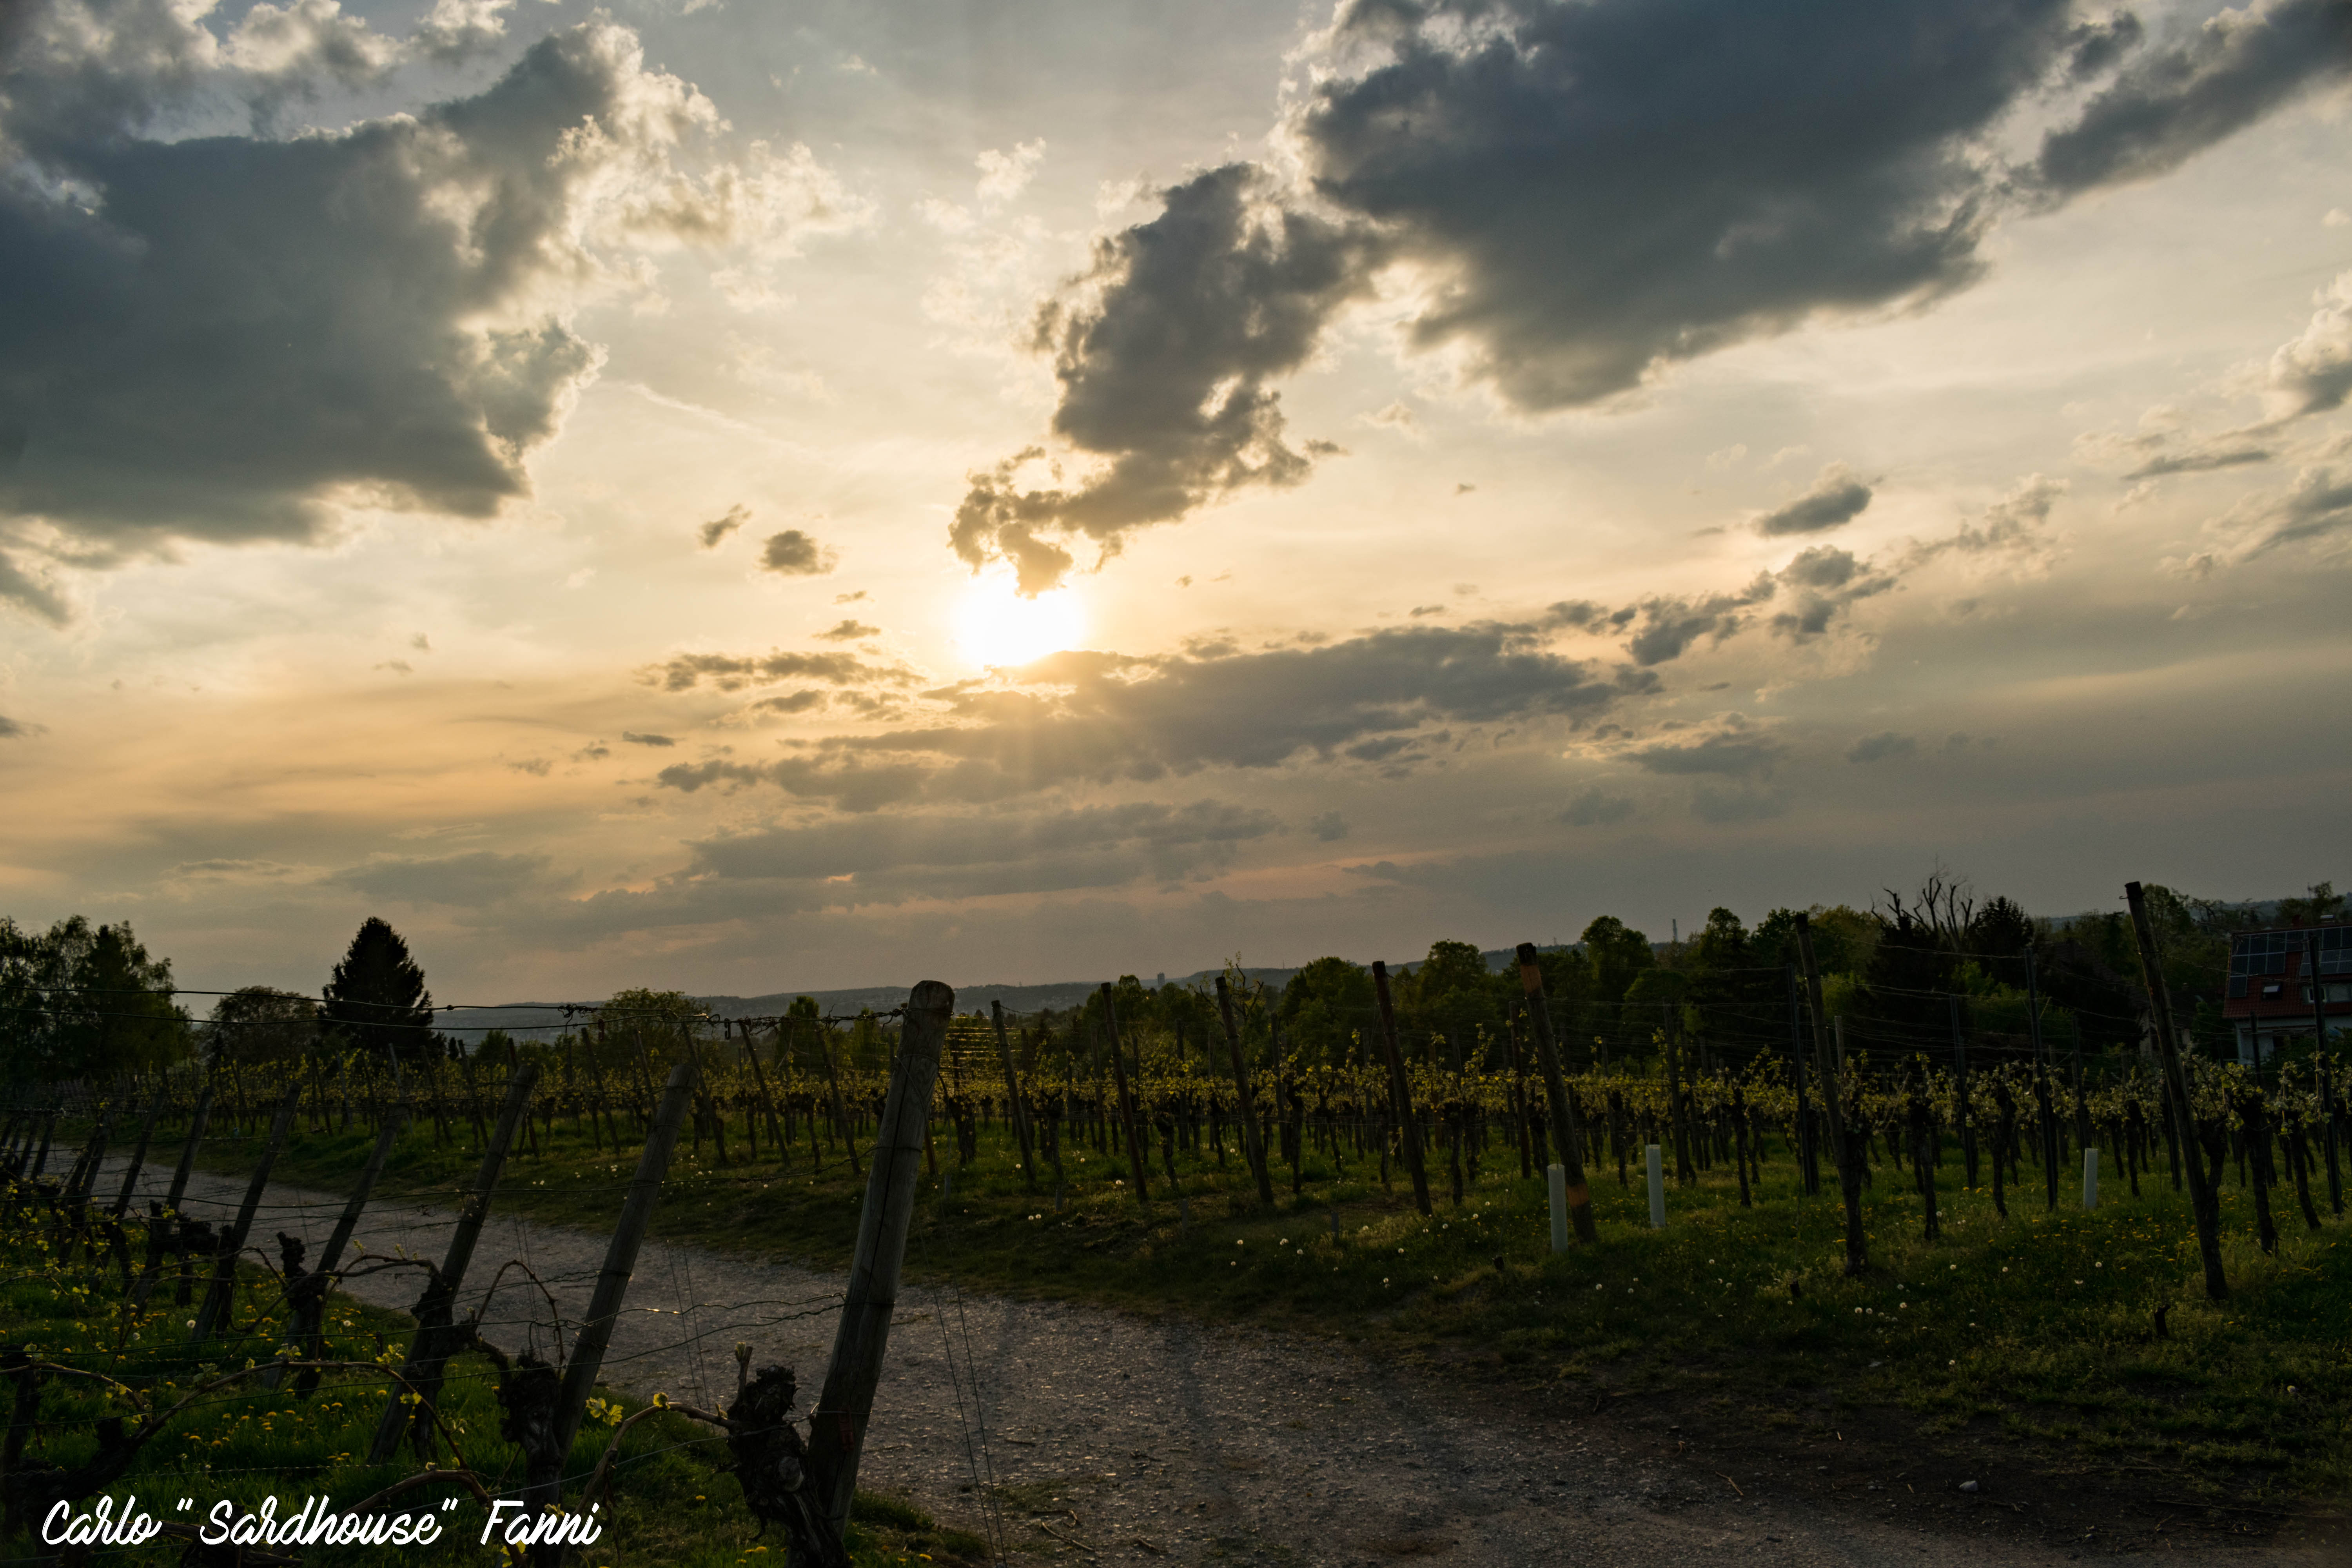 Sunset in Fellbach vineyard #2